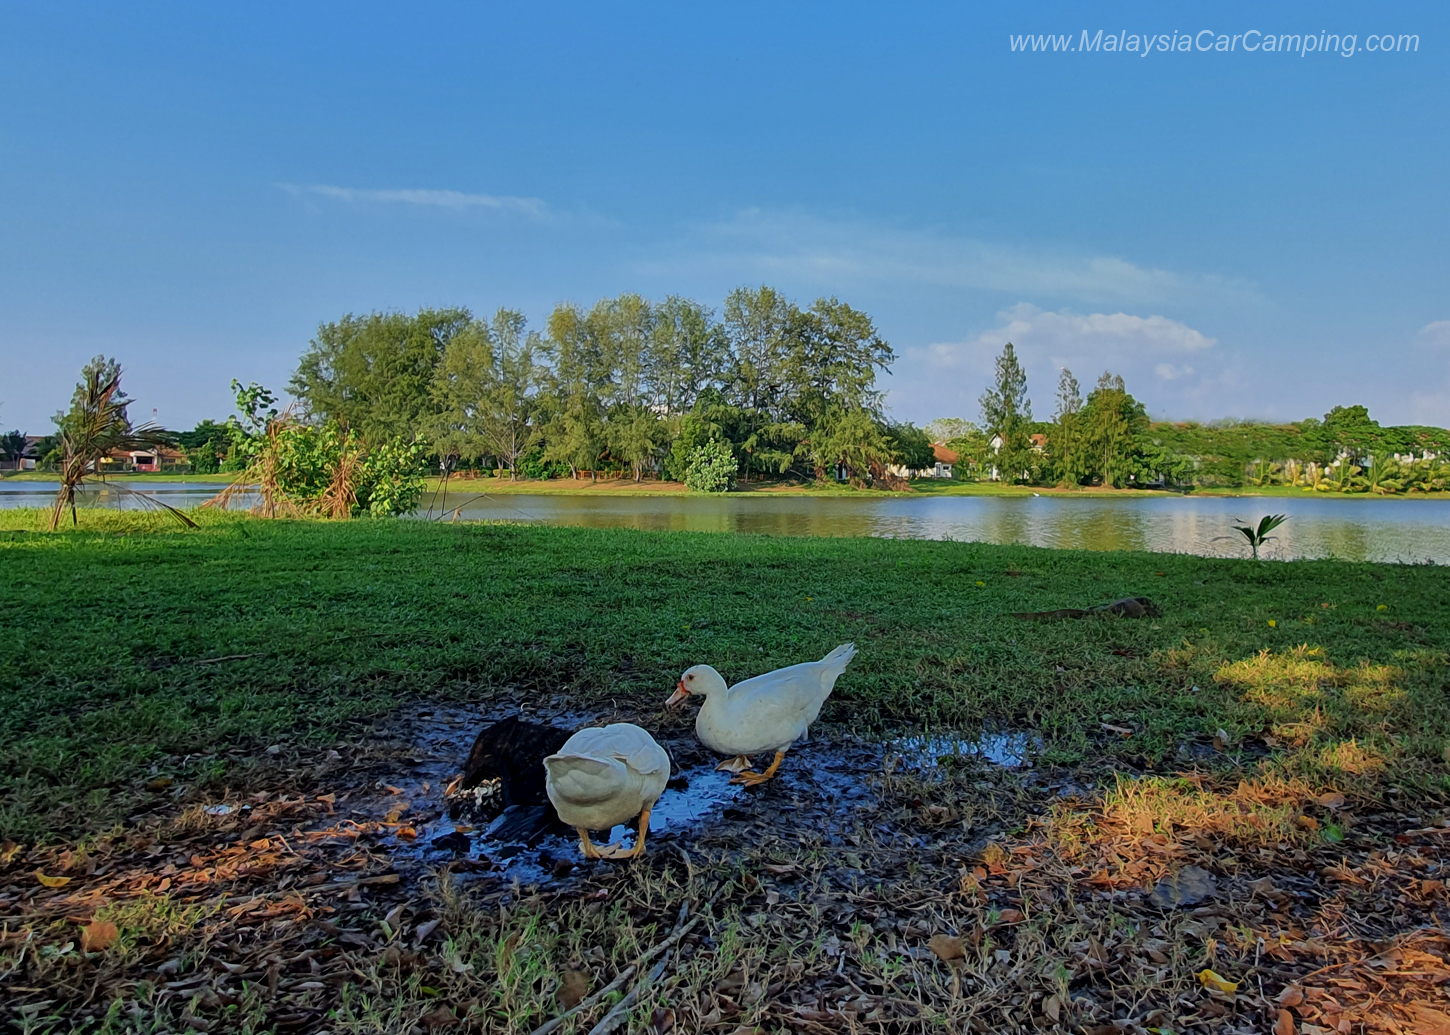 camping_with_dogs_puppy_lakeside_camping_malaysia_car_camping_malaysia_campsite-3